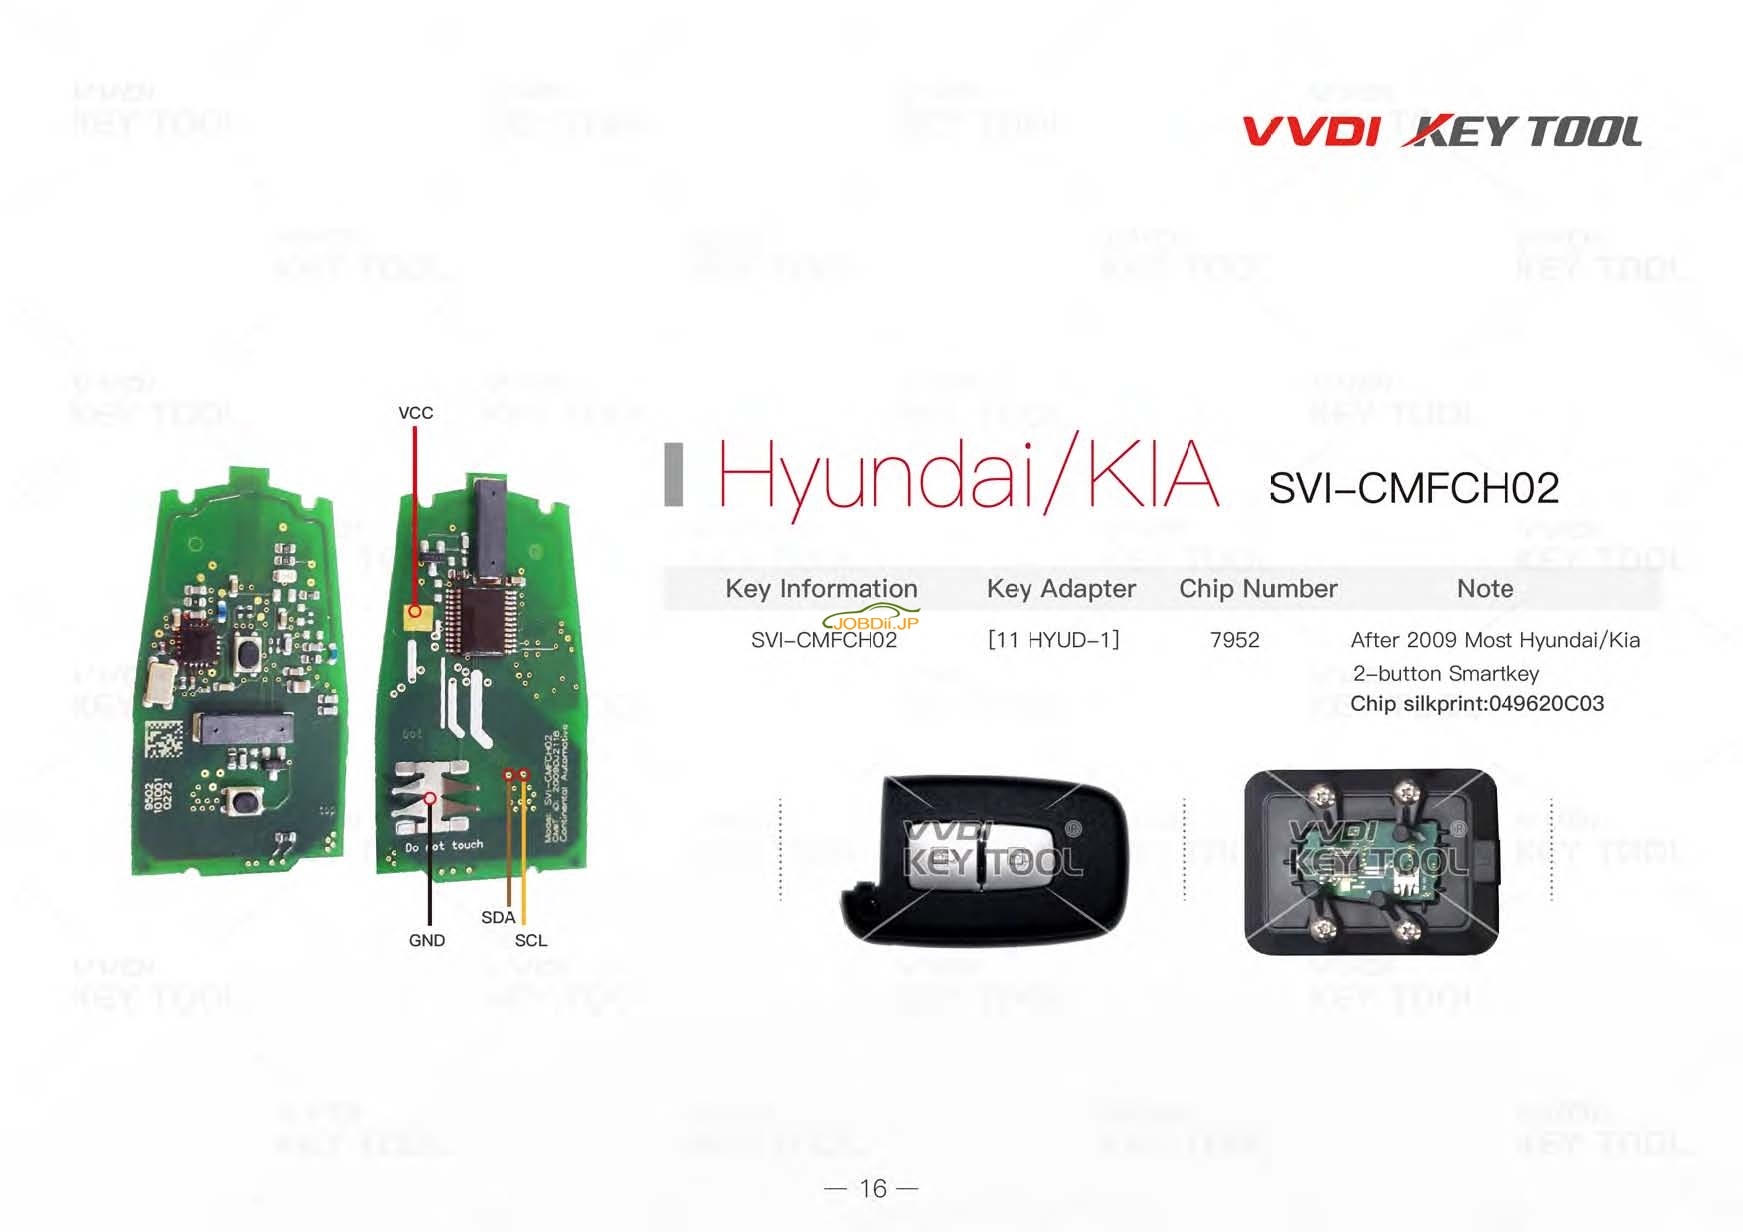 vvdi-key-tool-renew-diagram-16